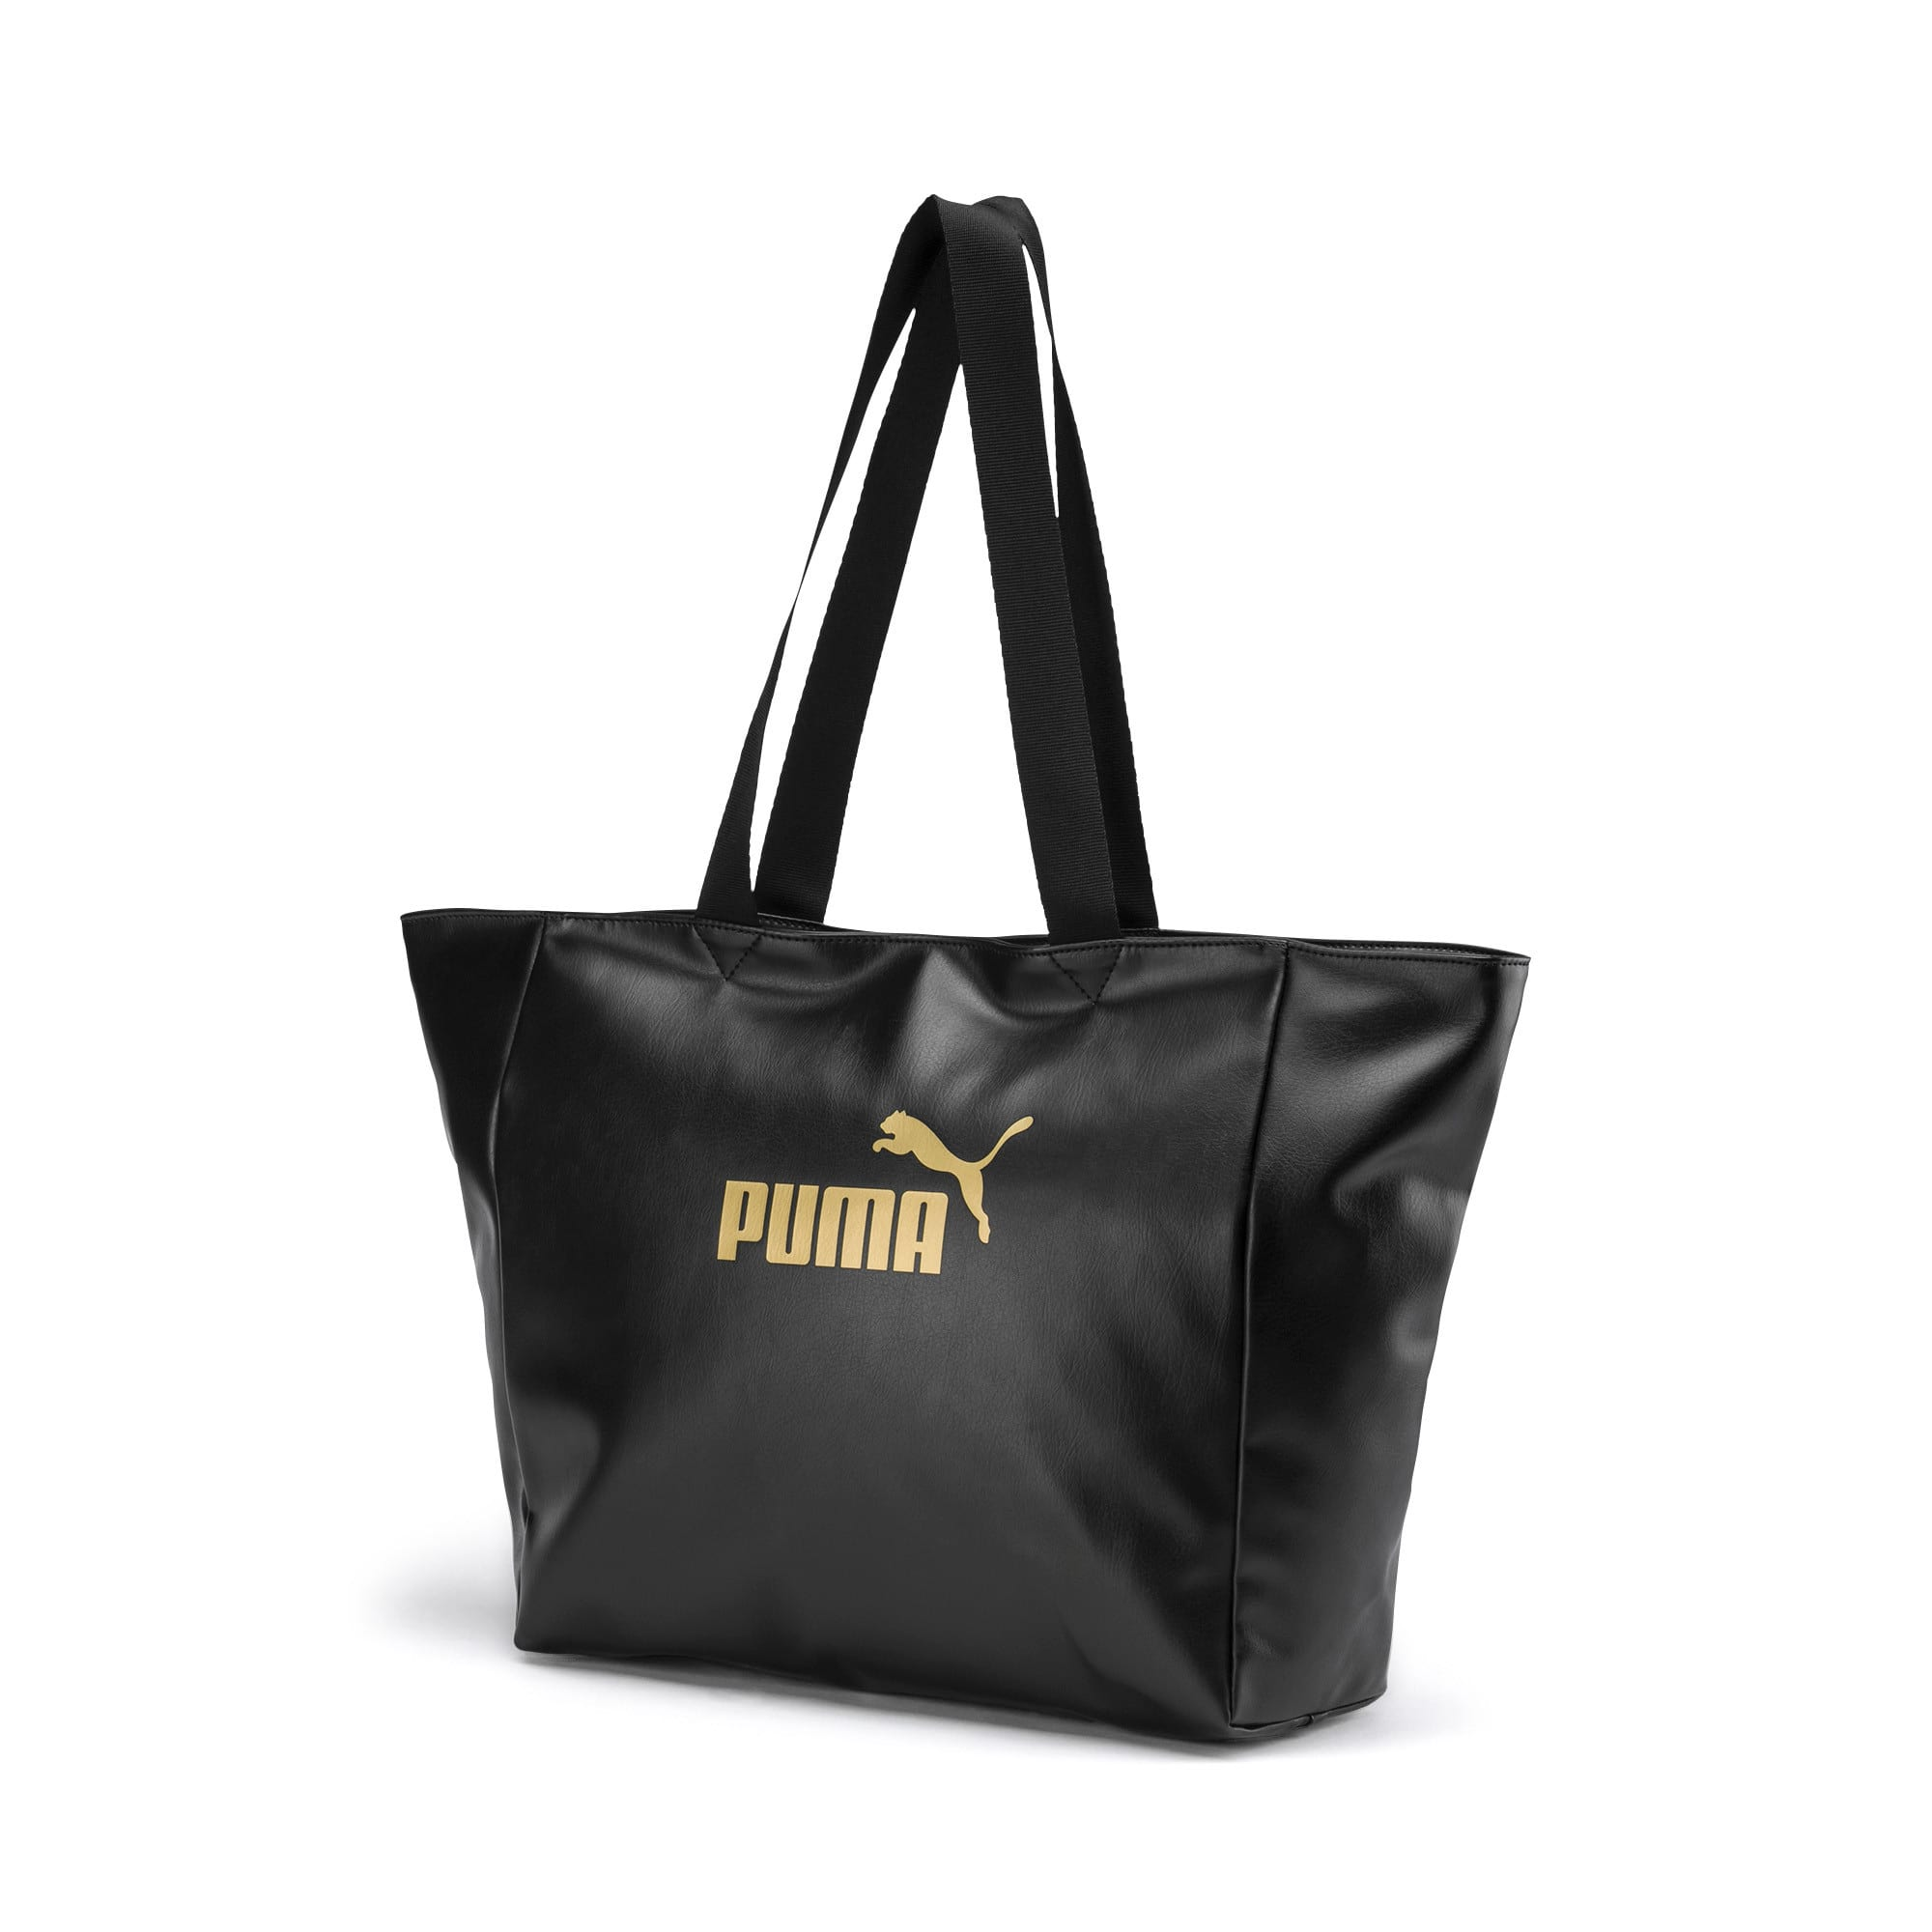 Thumbnail 1 of Large Women's Shopper, Puma Black-Gold, medium-IND